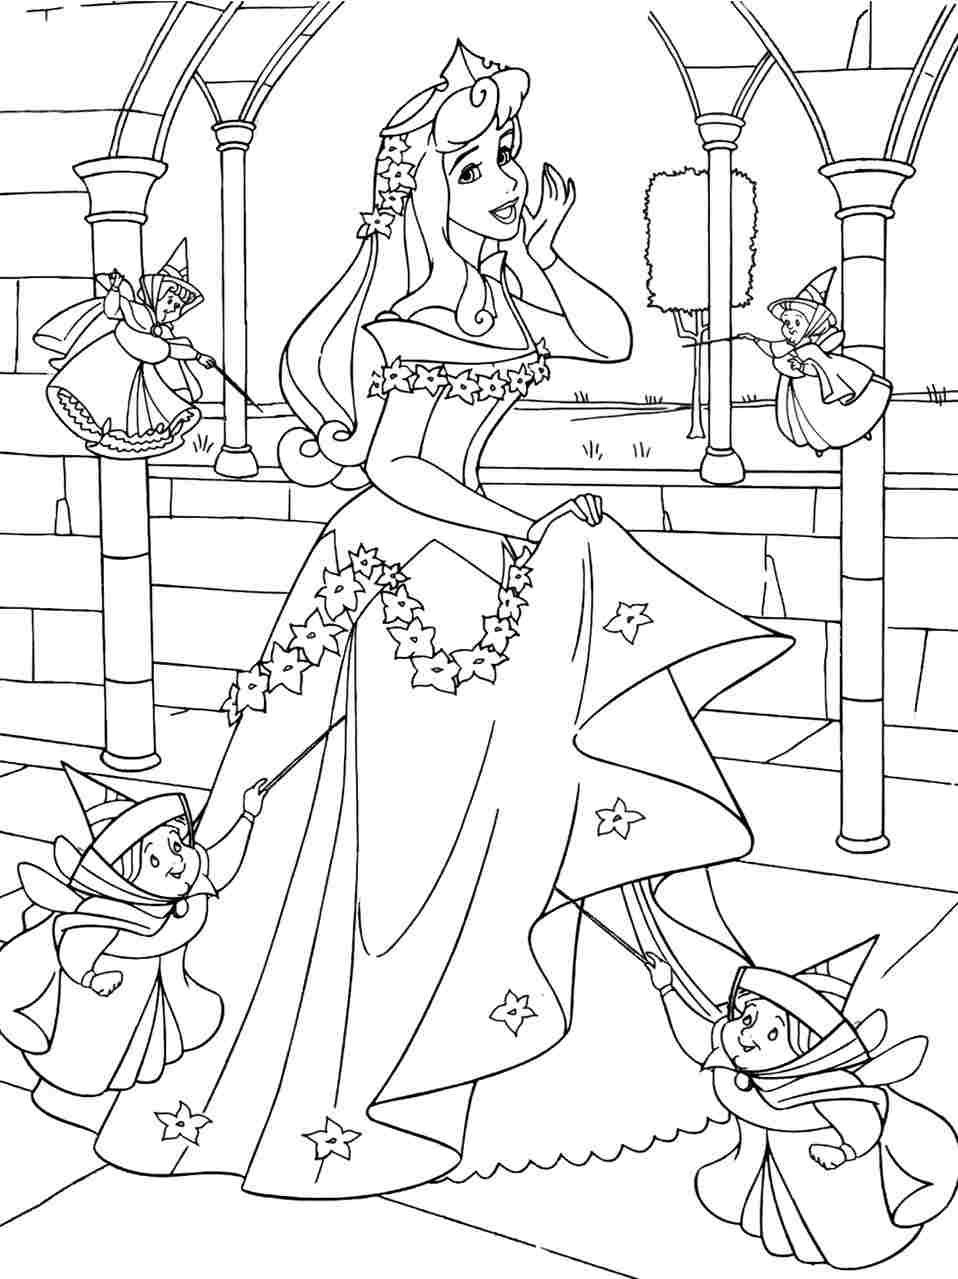 Sleeping Beauty Disney Coloring Pages Disney Princess Sleeping Beauty Coloring Pag Princess Coloring Pages Sleeping Beauty Coloring Pages Fairy Coloring Pages